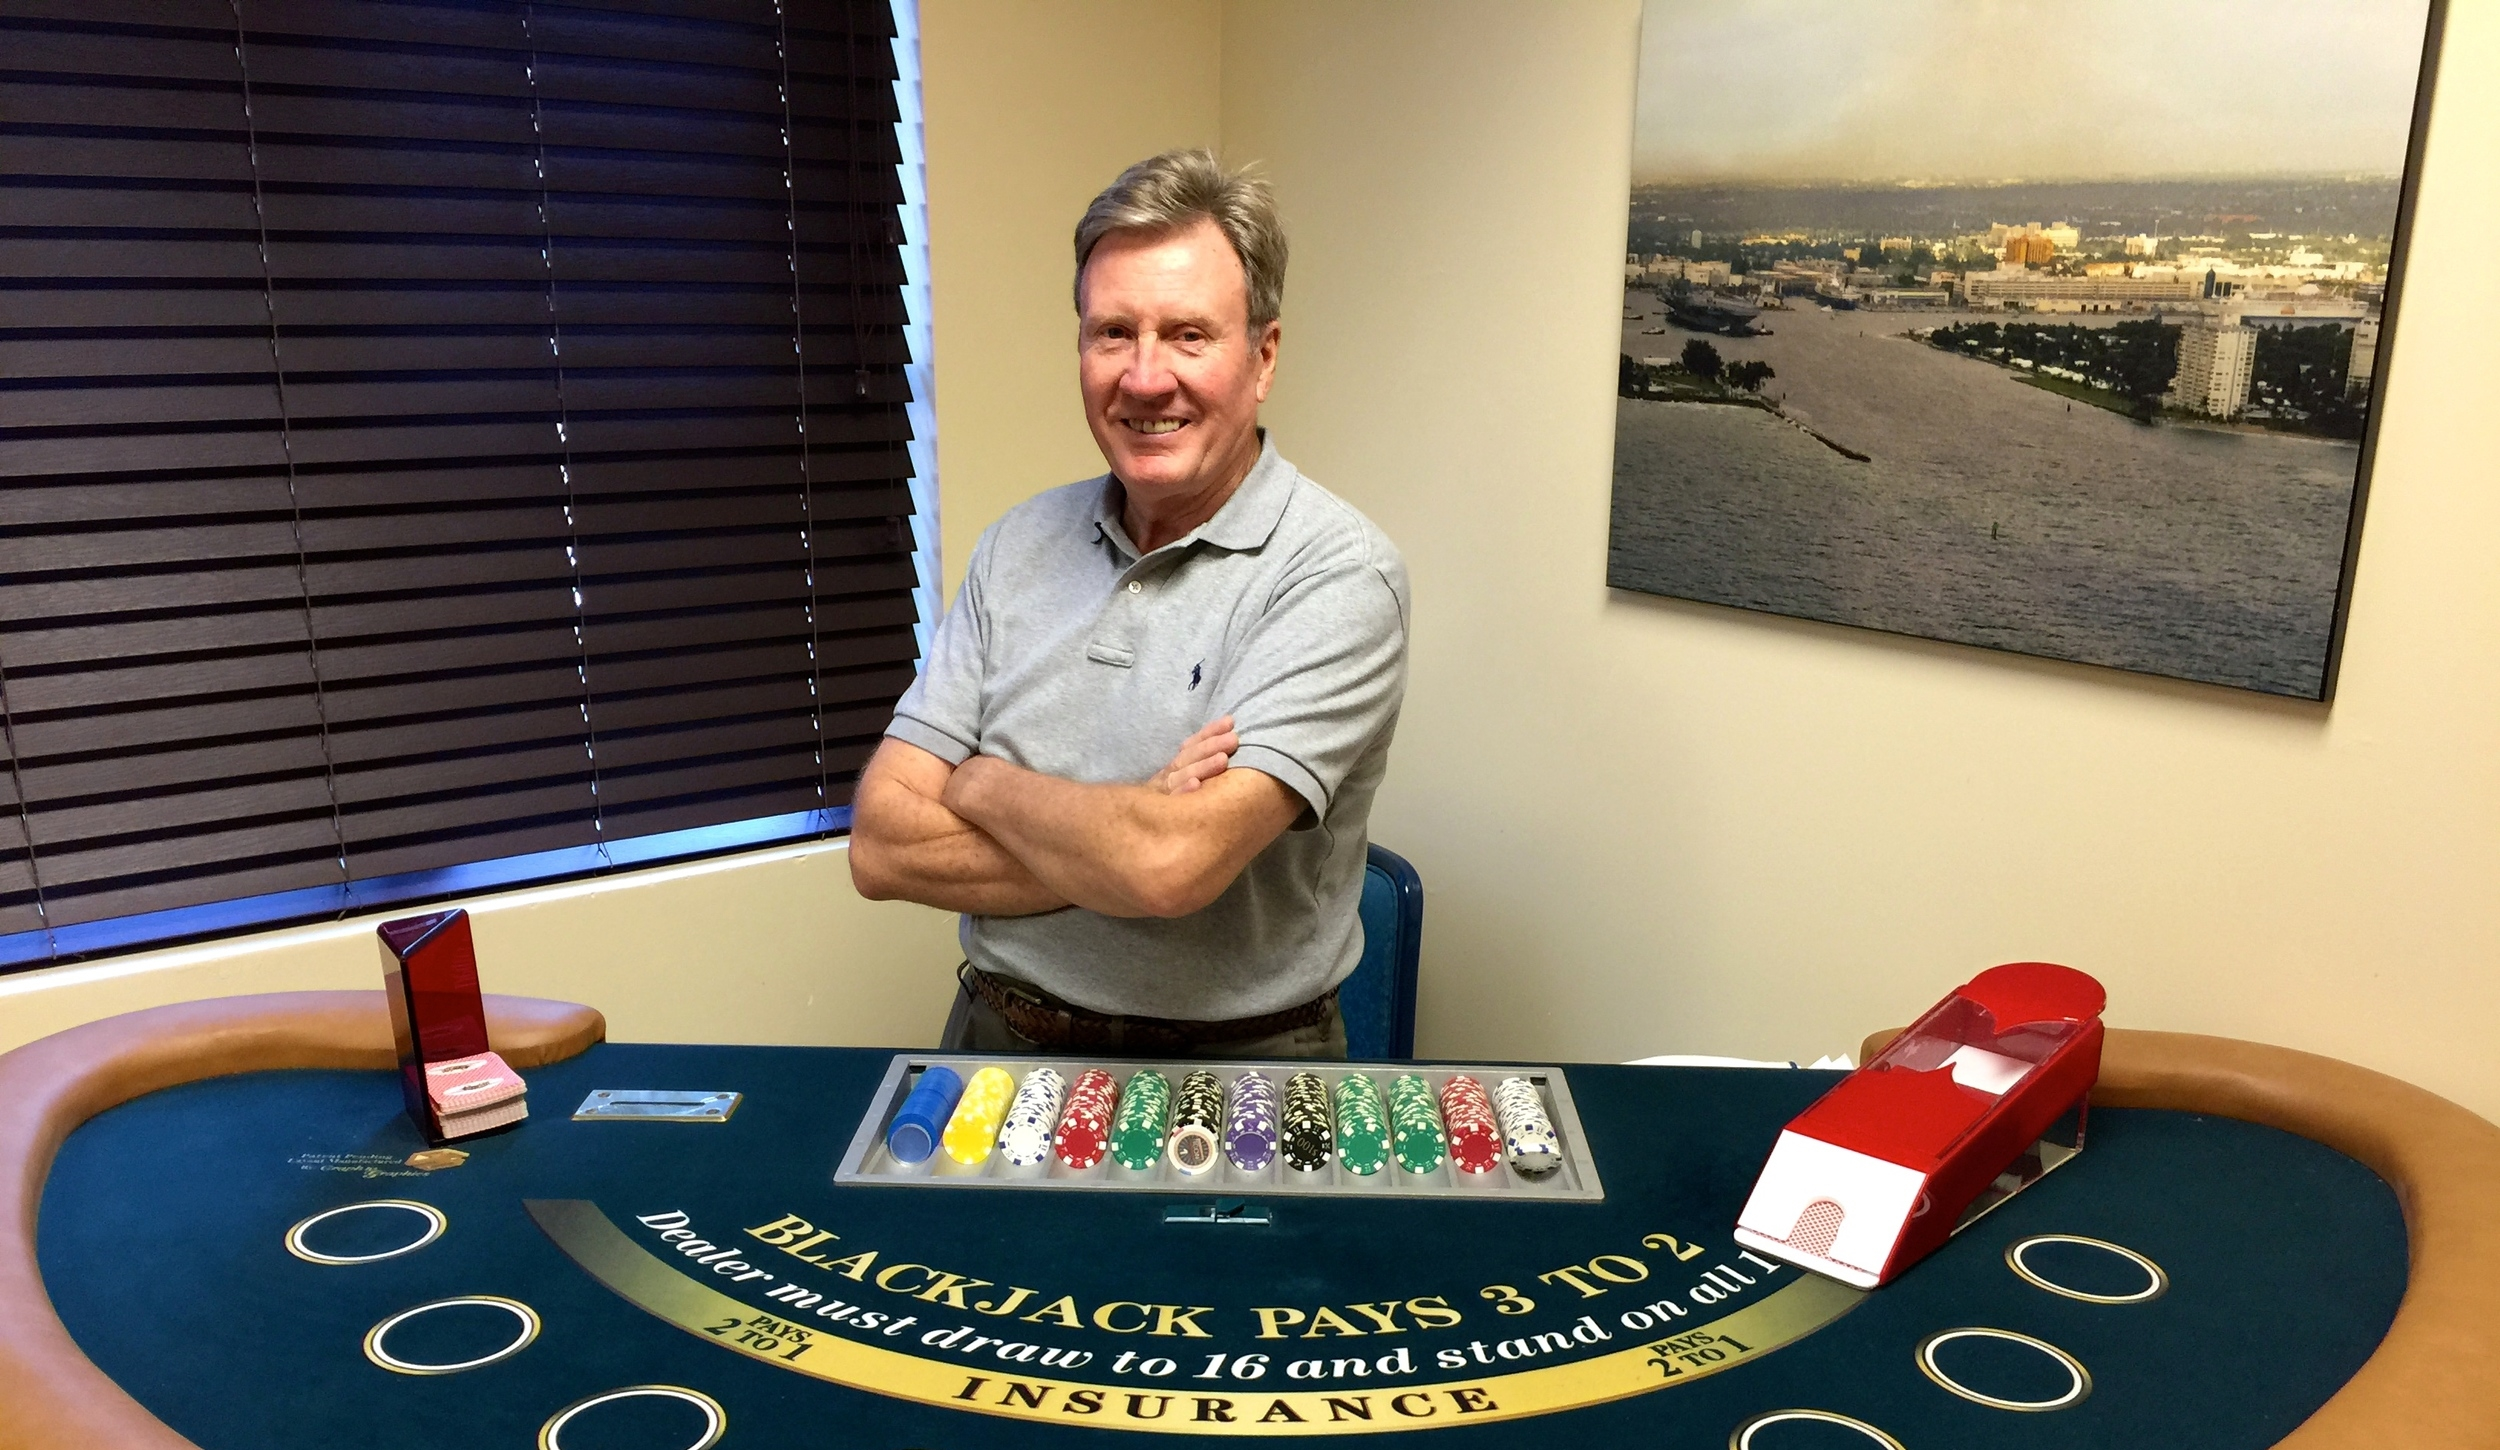 Owner, Tom Hutchison